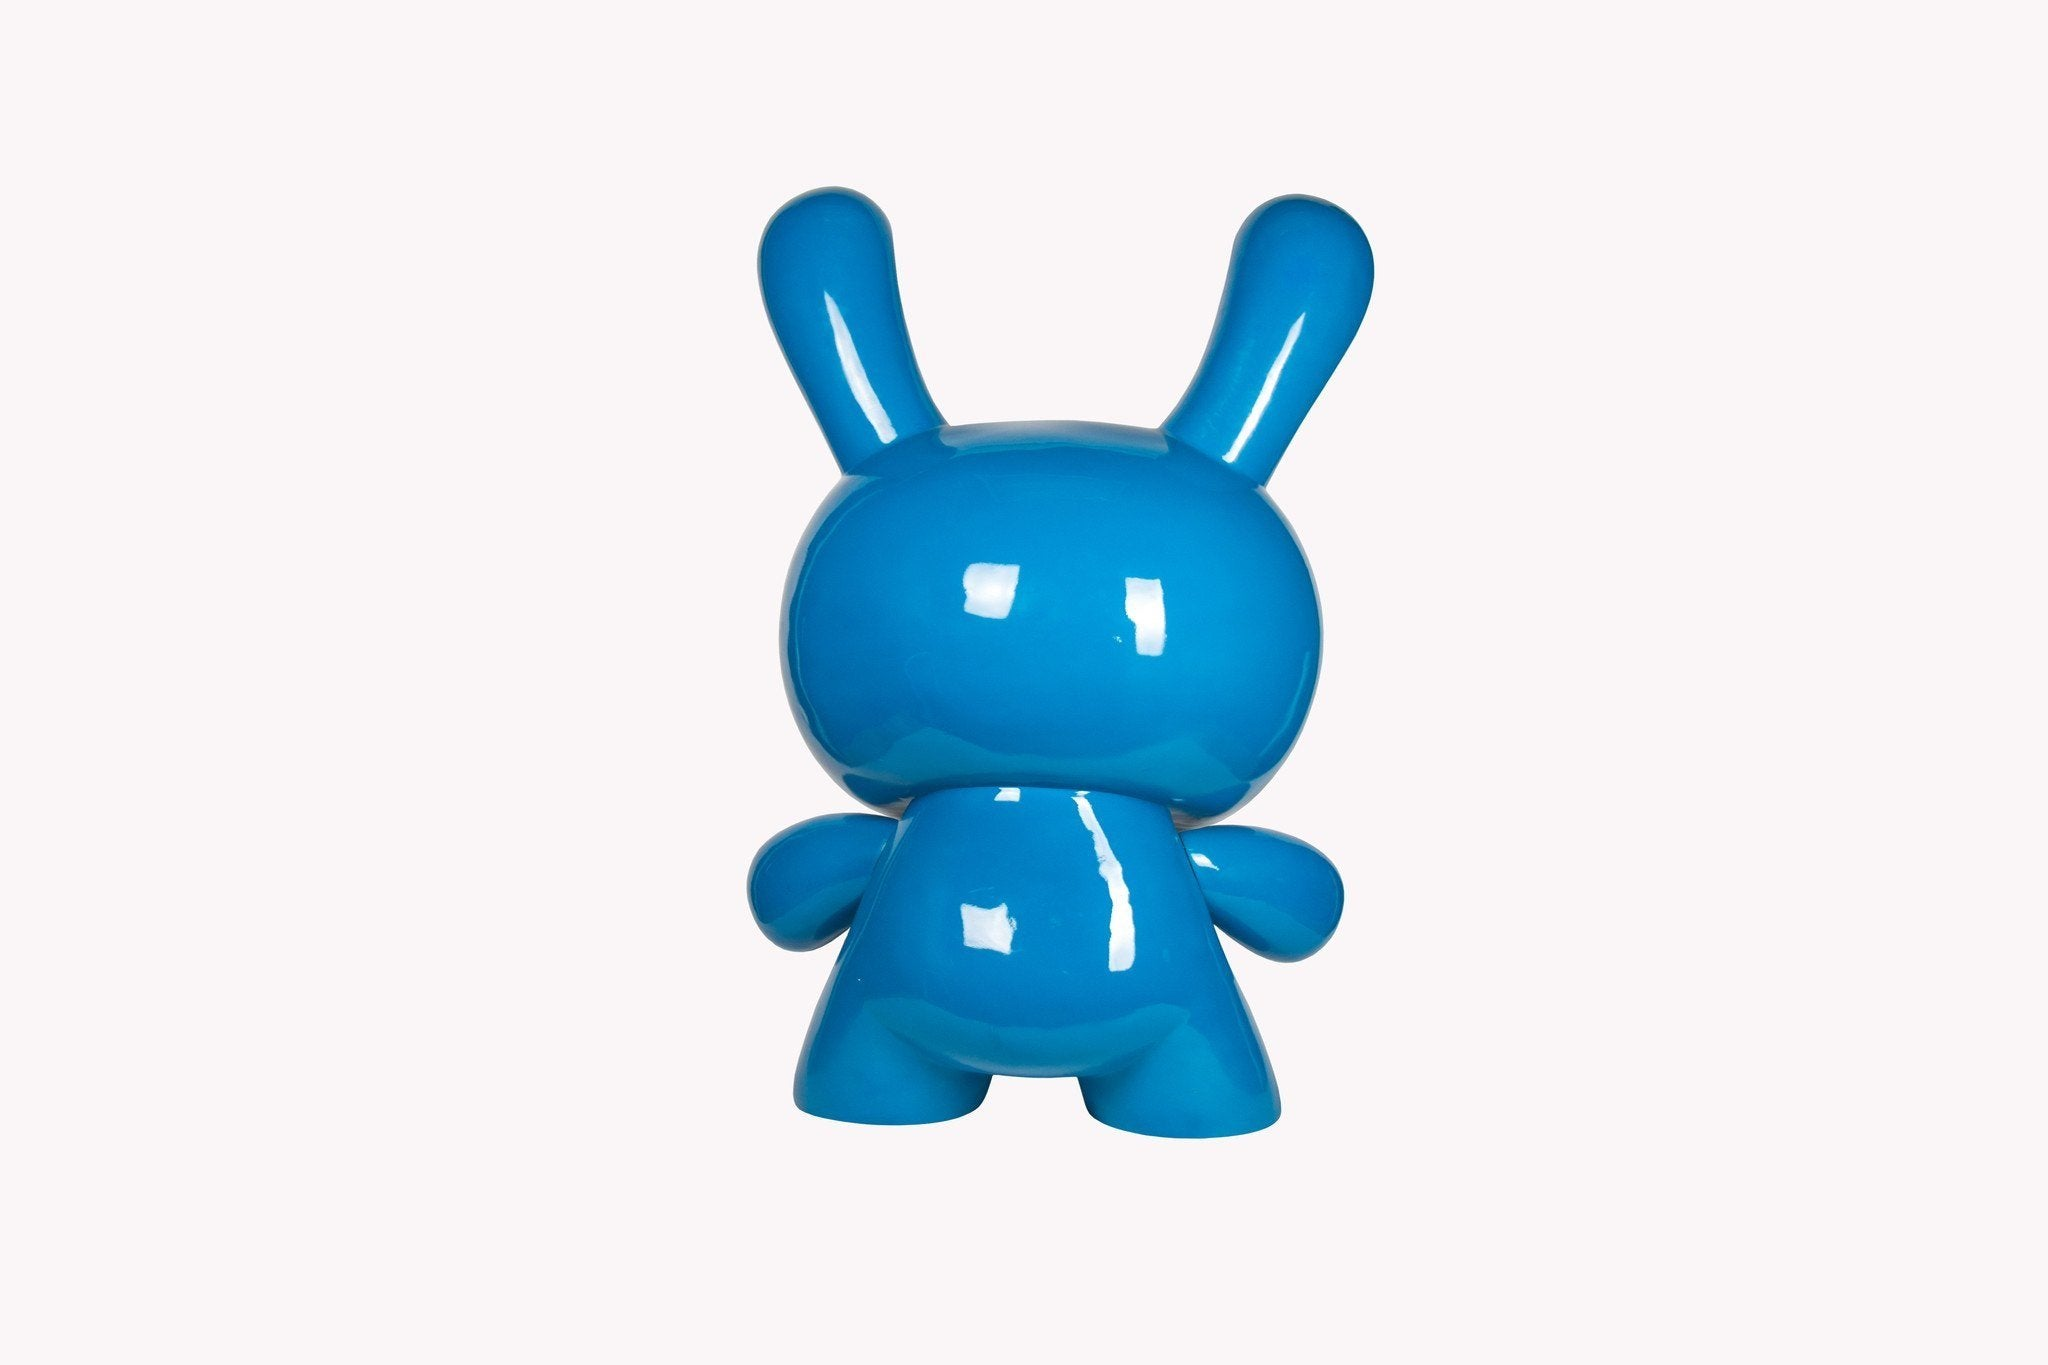 Art Giant 4 Foot Dunny Art Figure by Kidrobot - Kidrobot